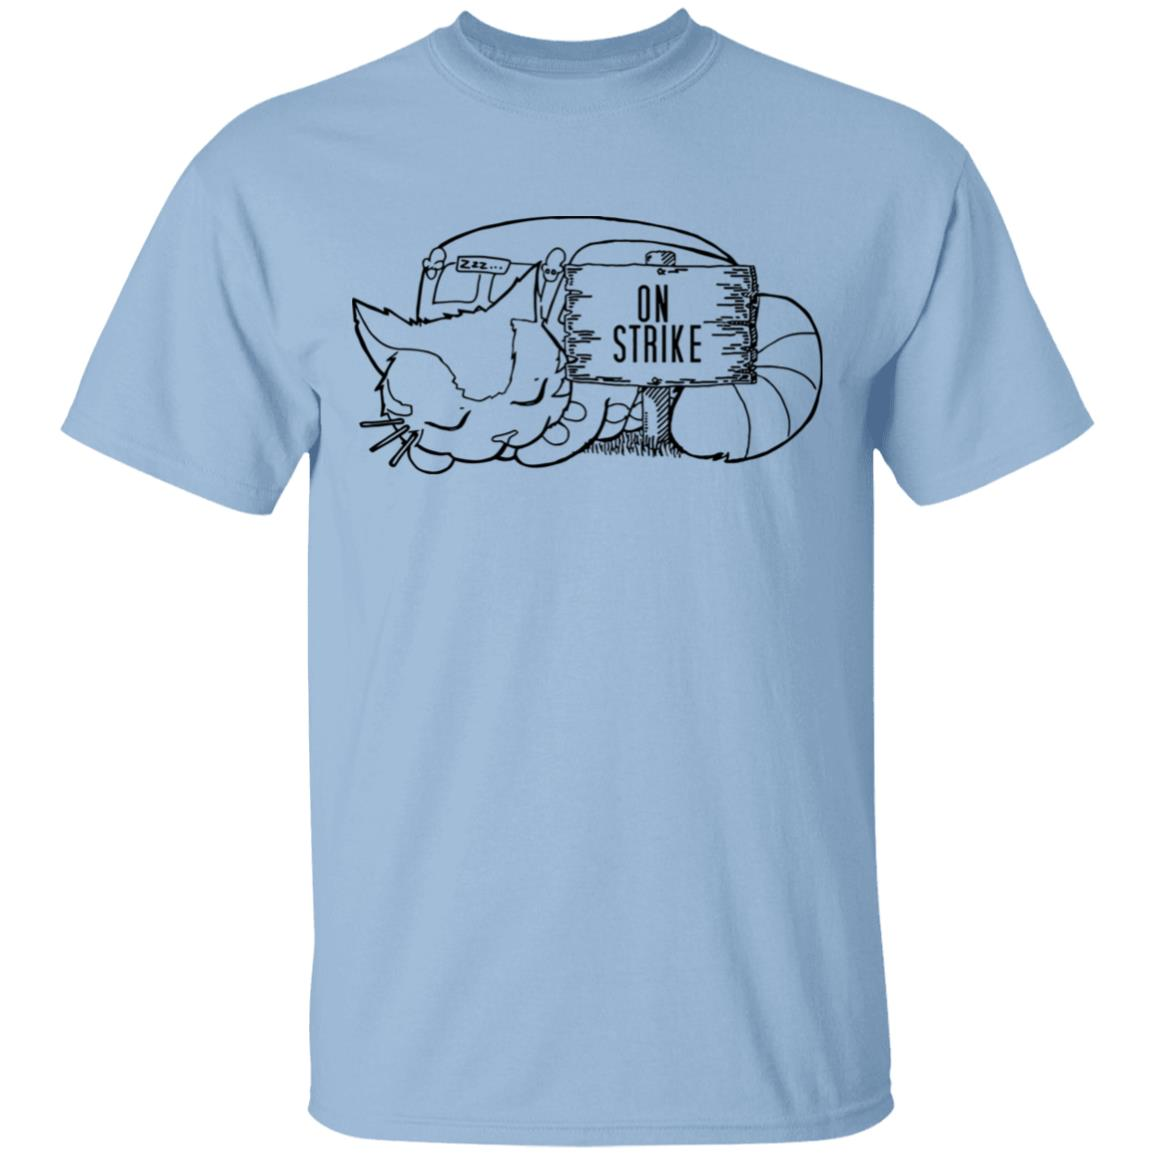 My Neighbor Totoro – CatBus on strike T Shirt